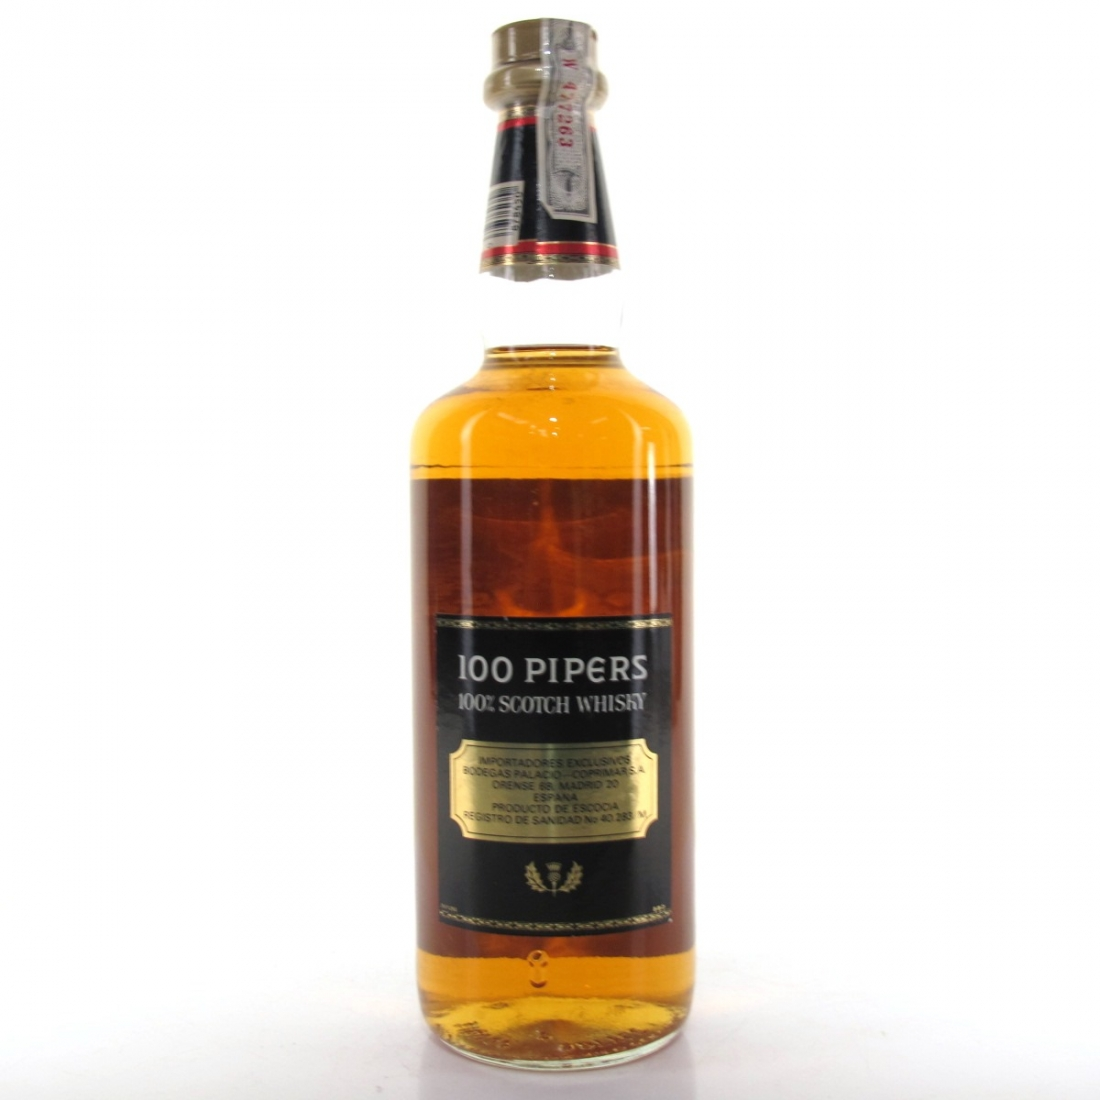 100 Pipers 1980s